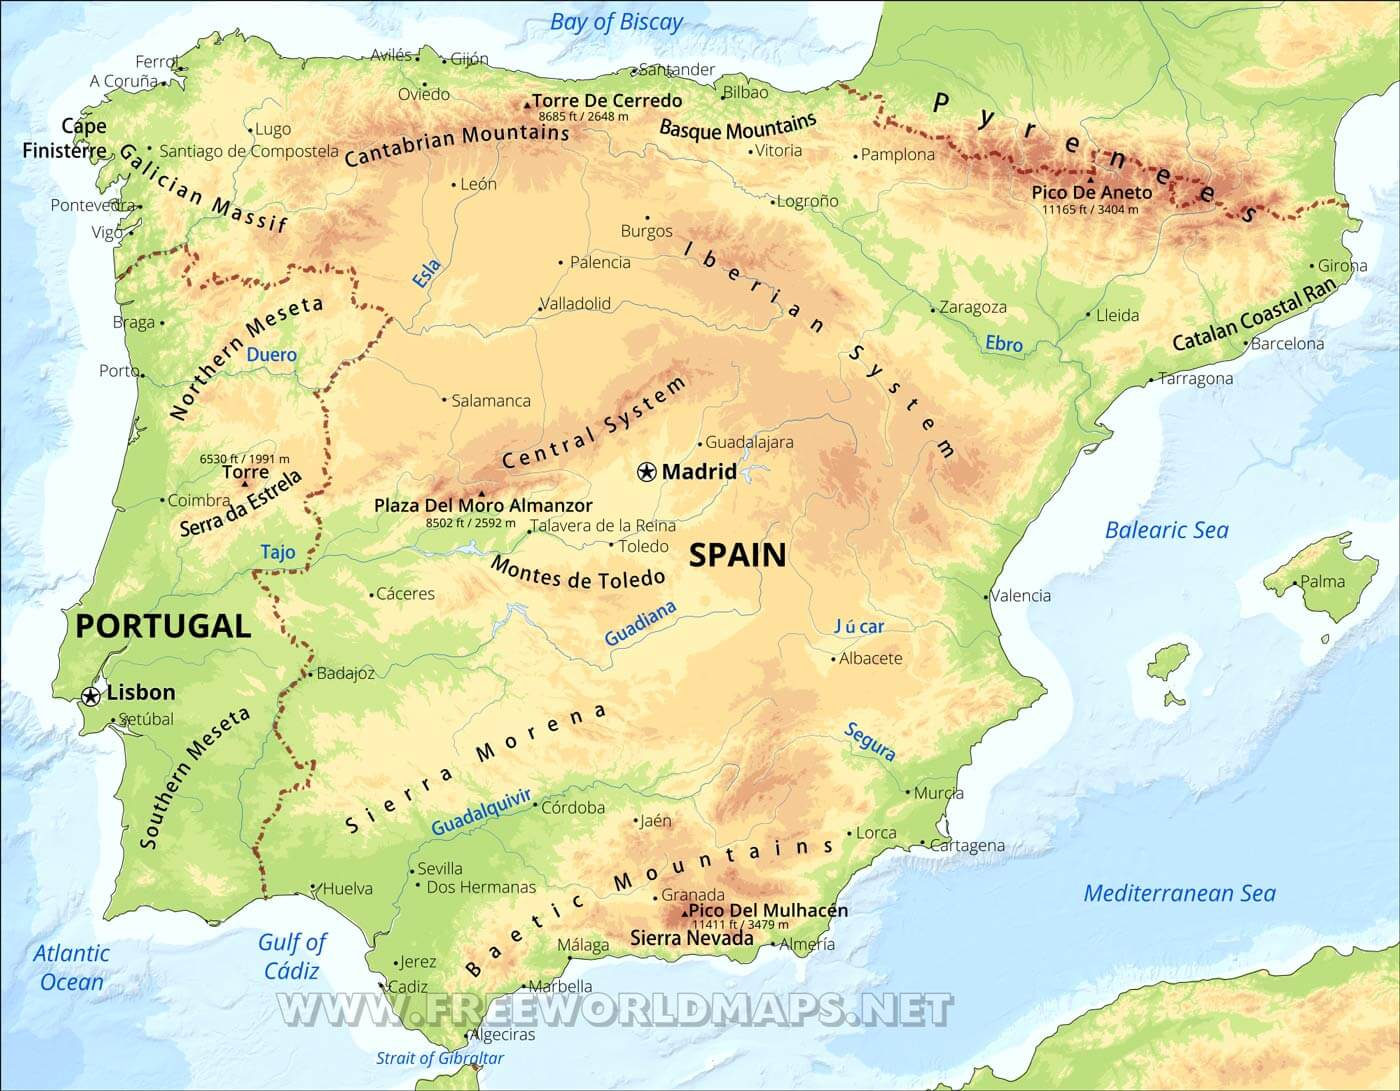 Iberian Peninsula map on spain map, portugal location on map, ural mountains map, herculaneum map, latin map, spanish language, mediterranean map, austria map, scandinavian peninsula, strait of gibraltar, spanish inquisition, poland map, iberian peninsula map, black sea, rock of gibraltar, italian peninsula, roman empire map, european map, arabian peninsula, the british isles map,